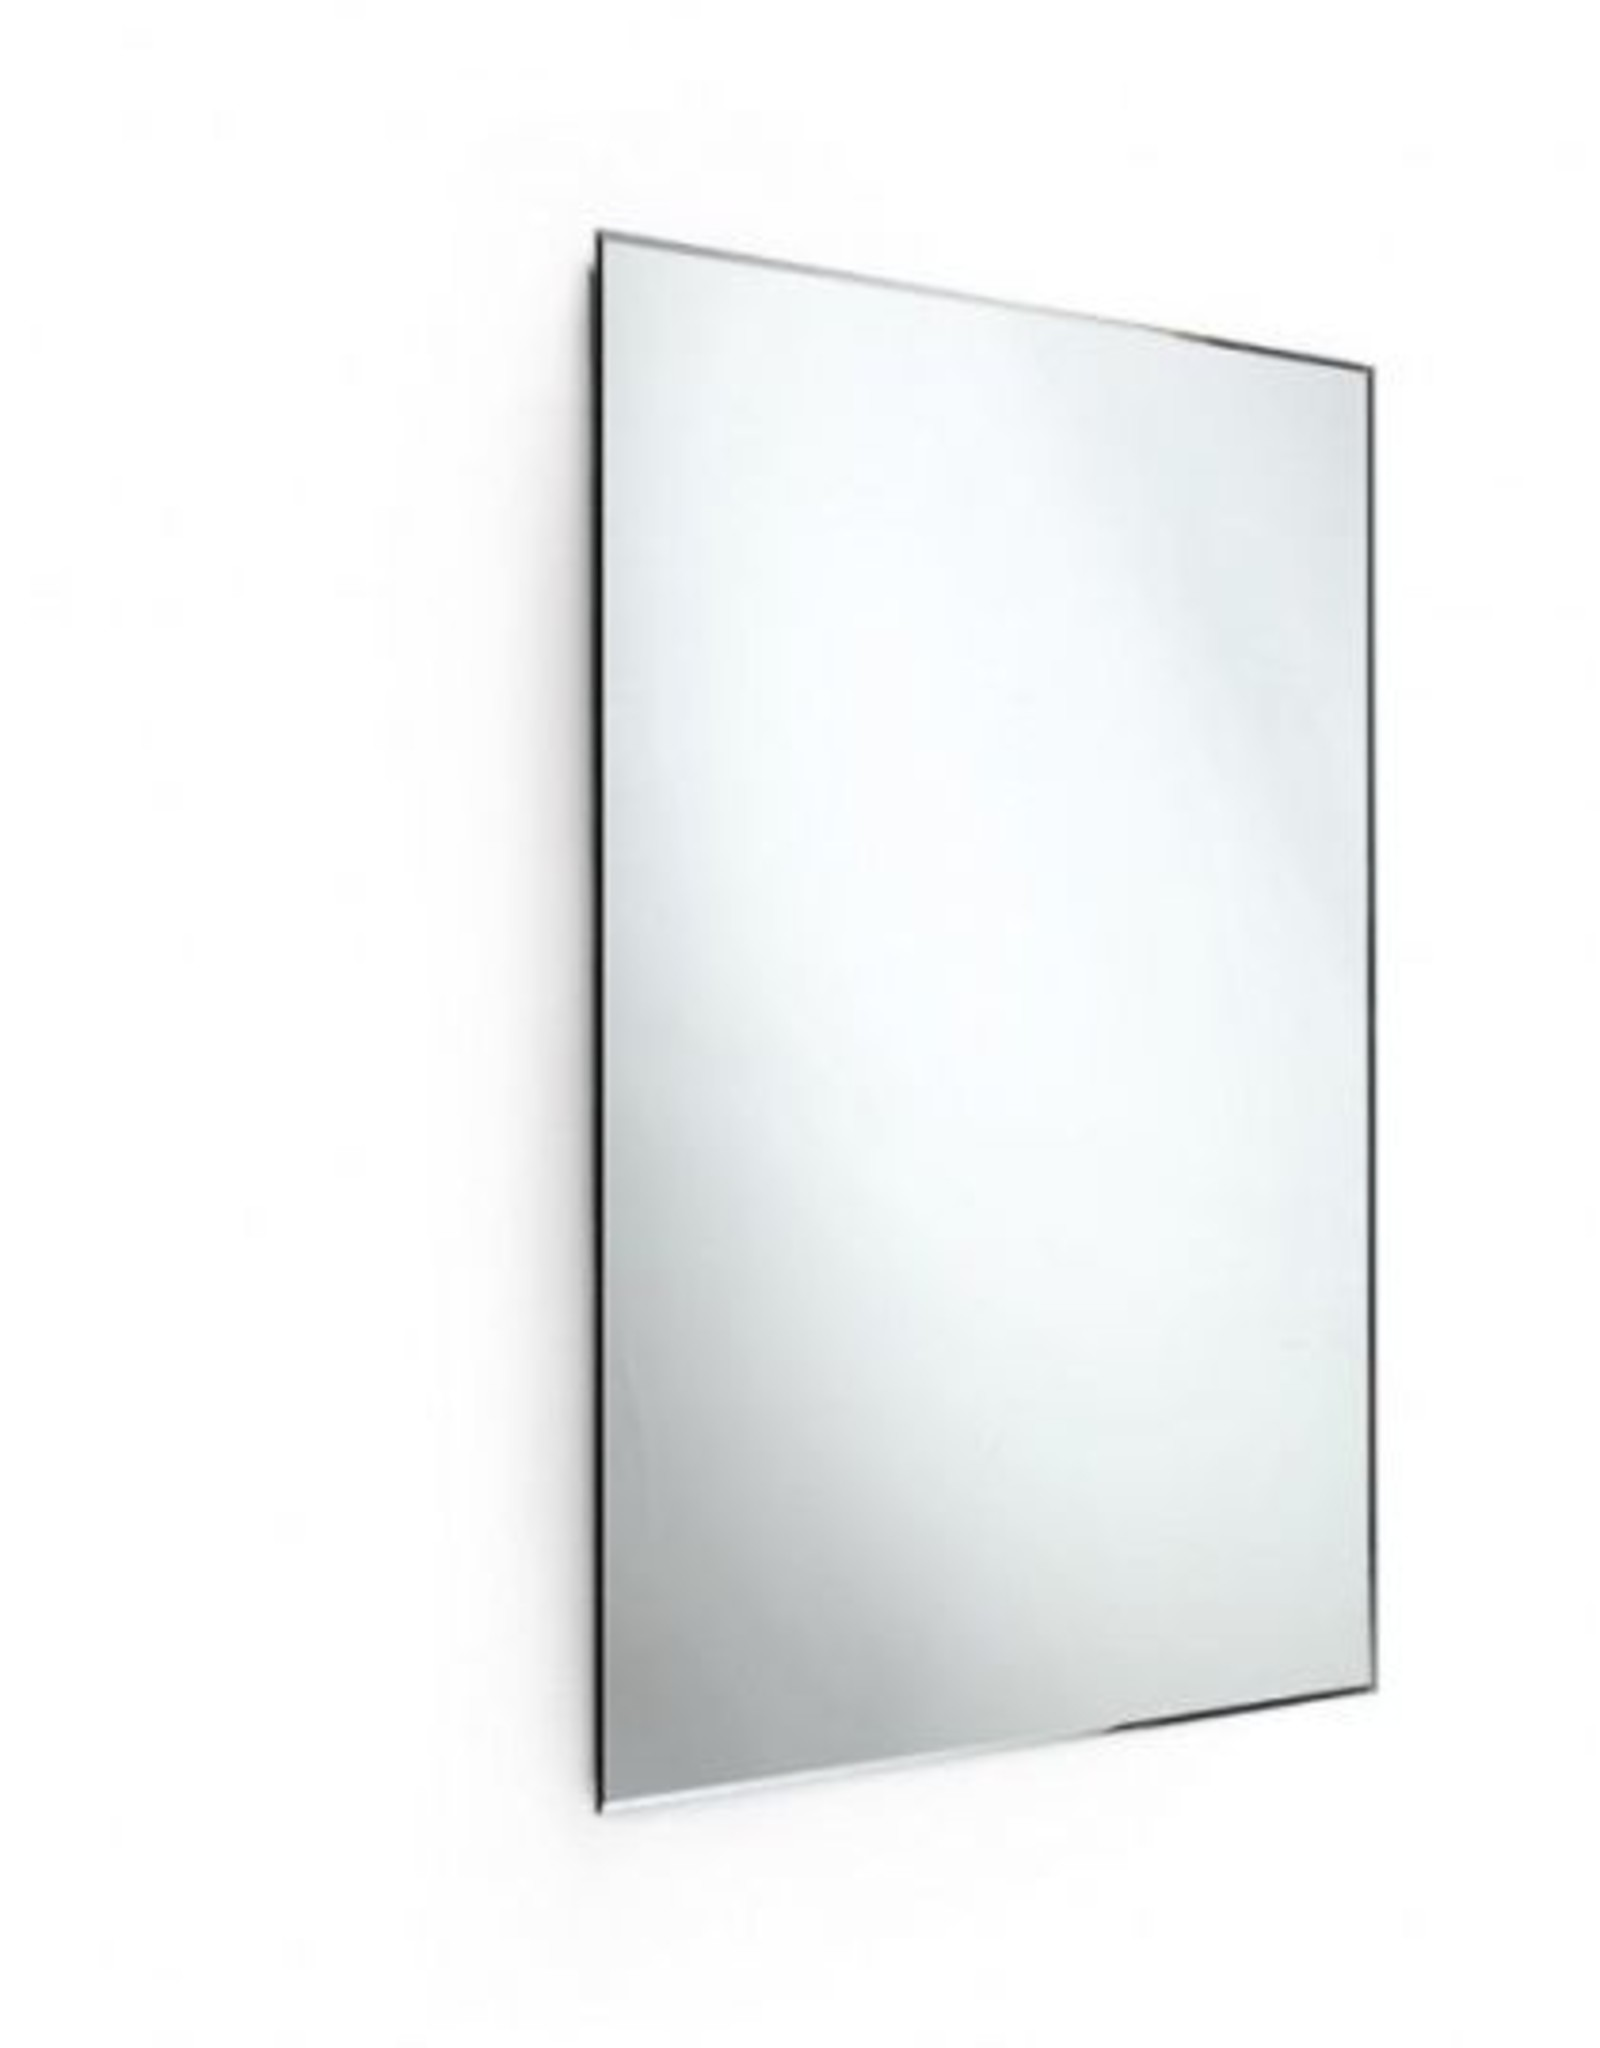 Speci mirror with bevel 60cm - outlet